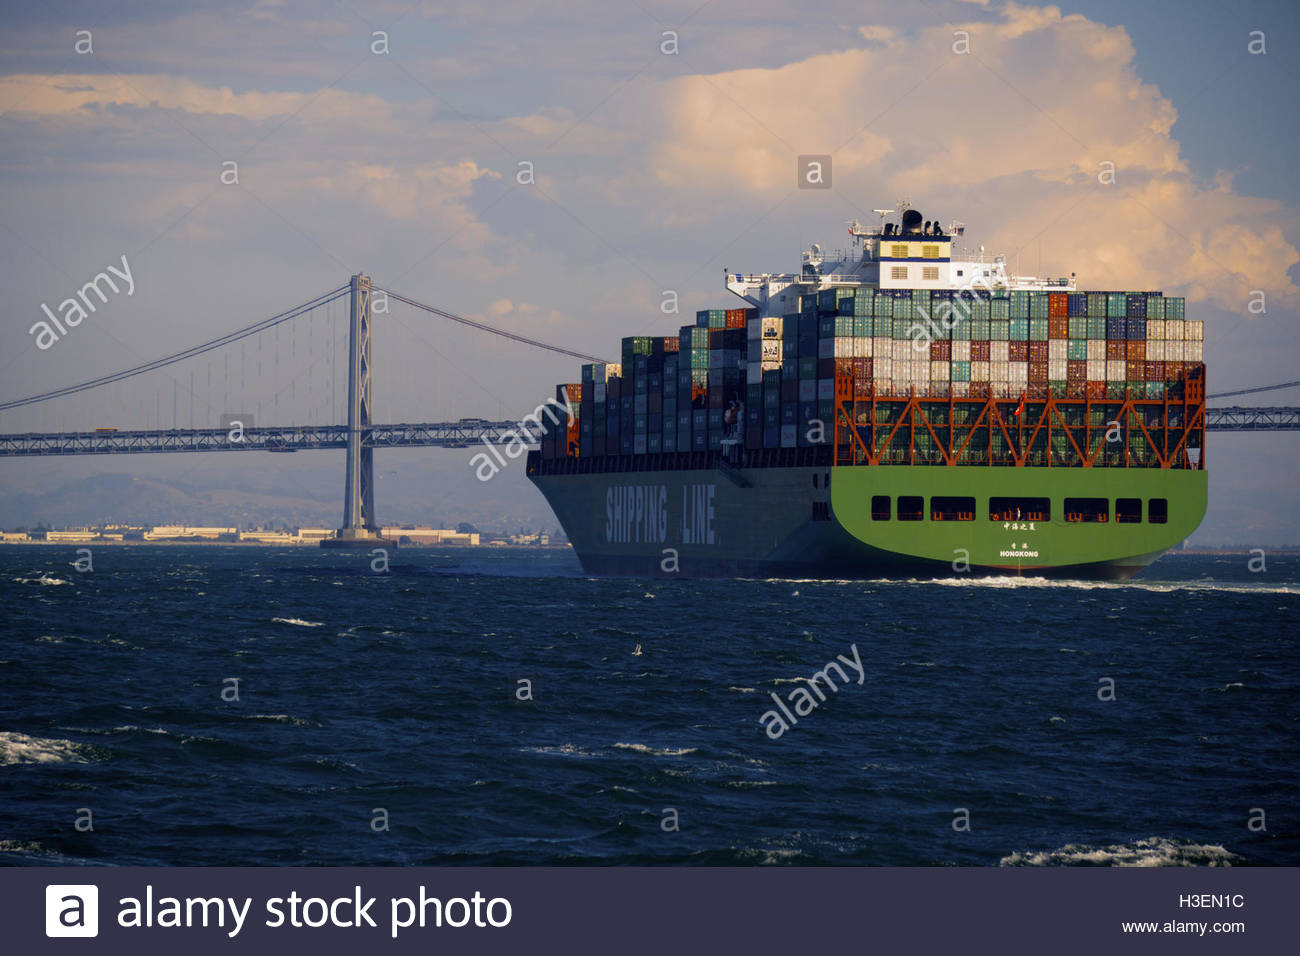 A Chinese cargo ship is stacked with shipping containers and is about to go under the San Francisco-Oakland Bay - Stock Image